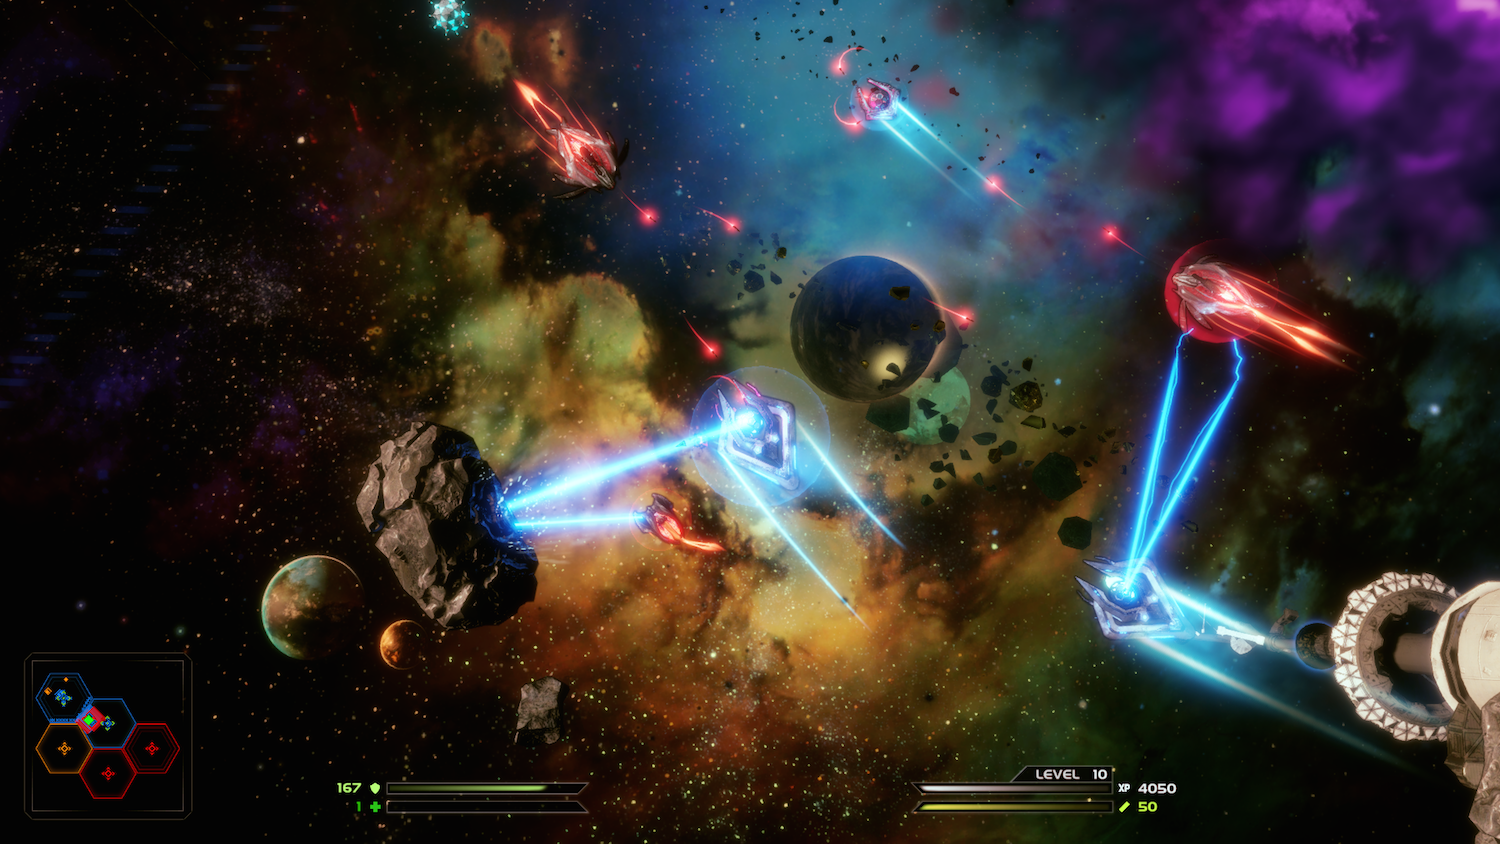 New PS4, PC Space Shooter Has Mode Where Your Team Invades Other People's Matches